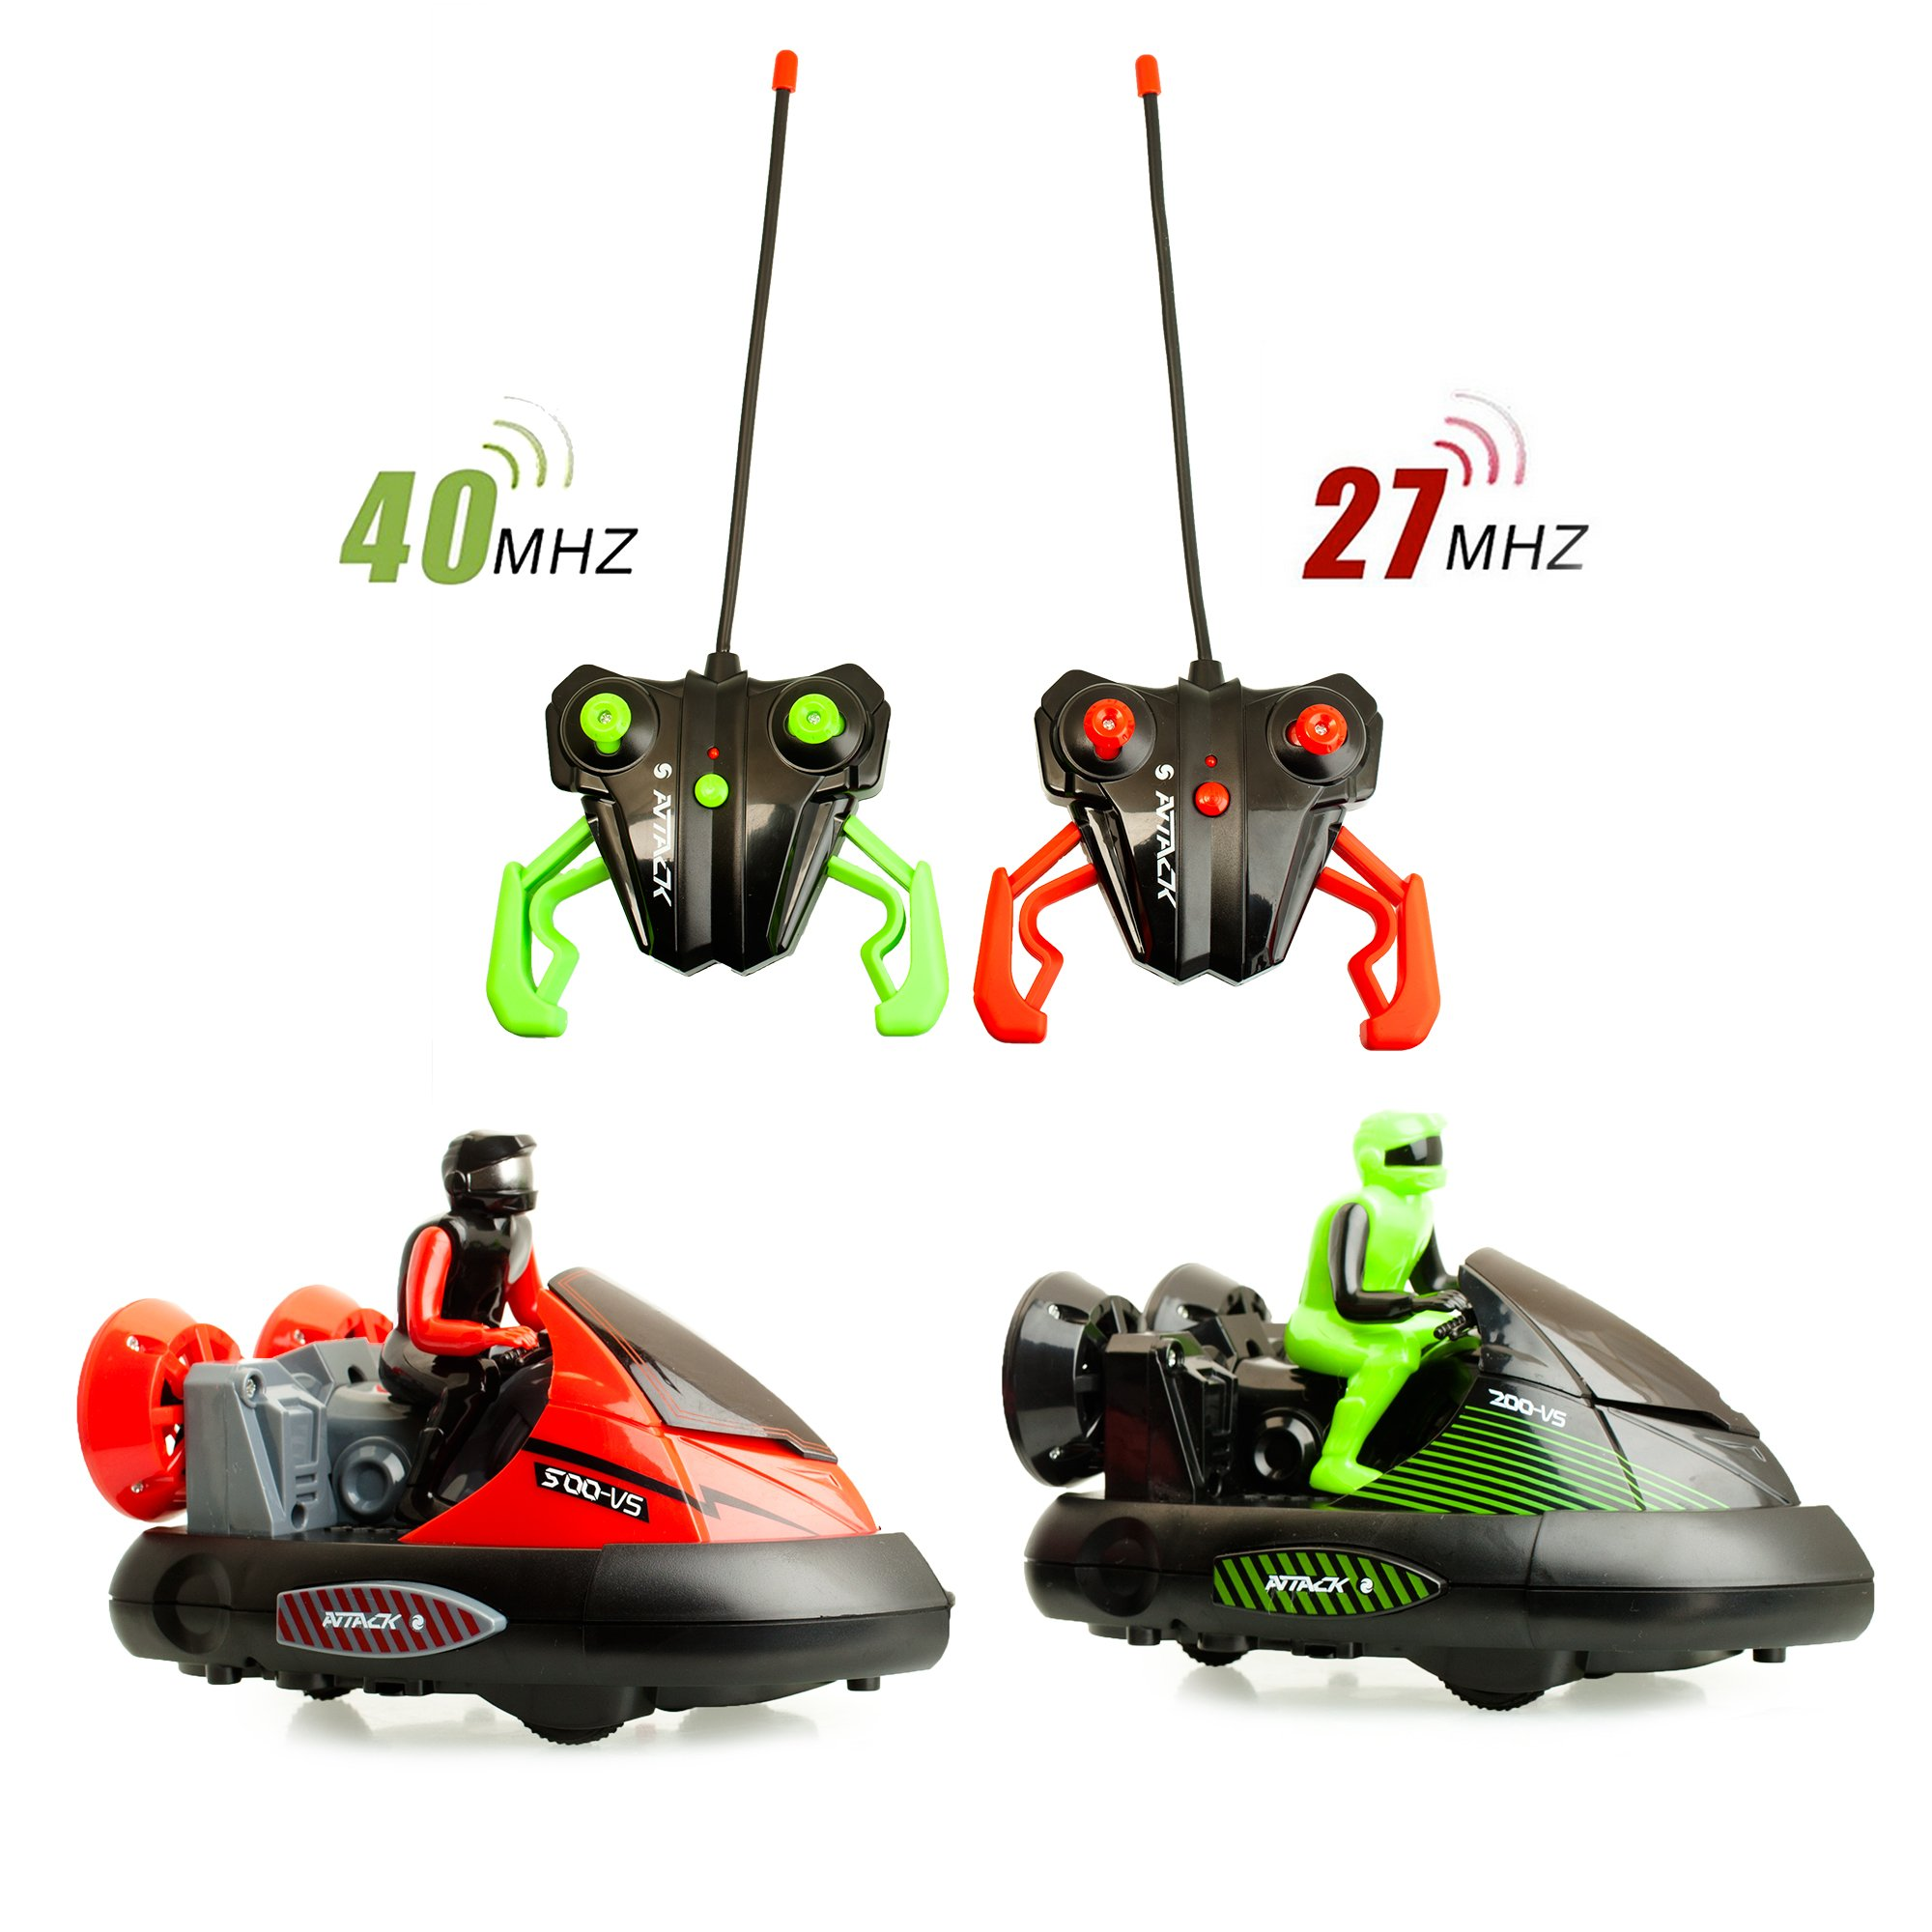 ToyThrill 2 Pack Remote Control Bumper Cars – Two Player Stunt RC Toy with Ejectable Drivers and Crash Sounds - Batteries and Adapter Included – Green and Red by ToyThrill (Image #7)